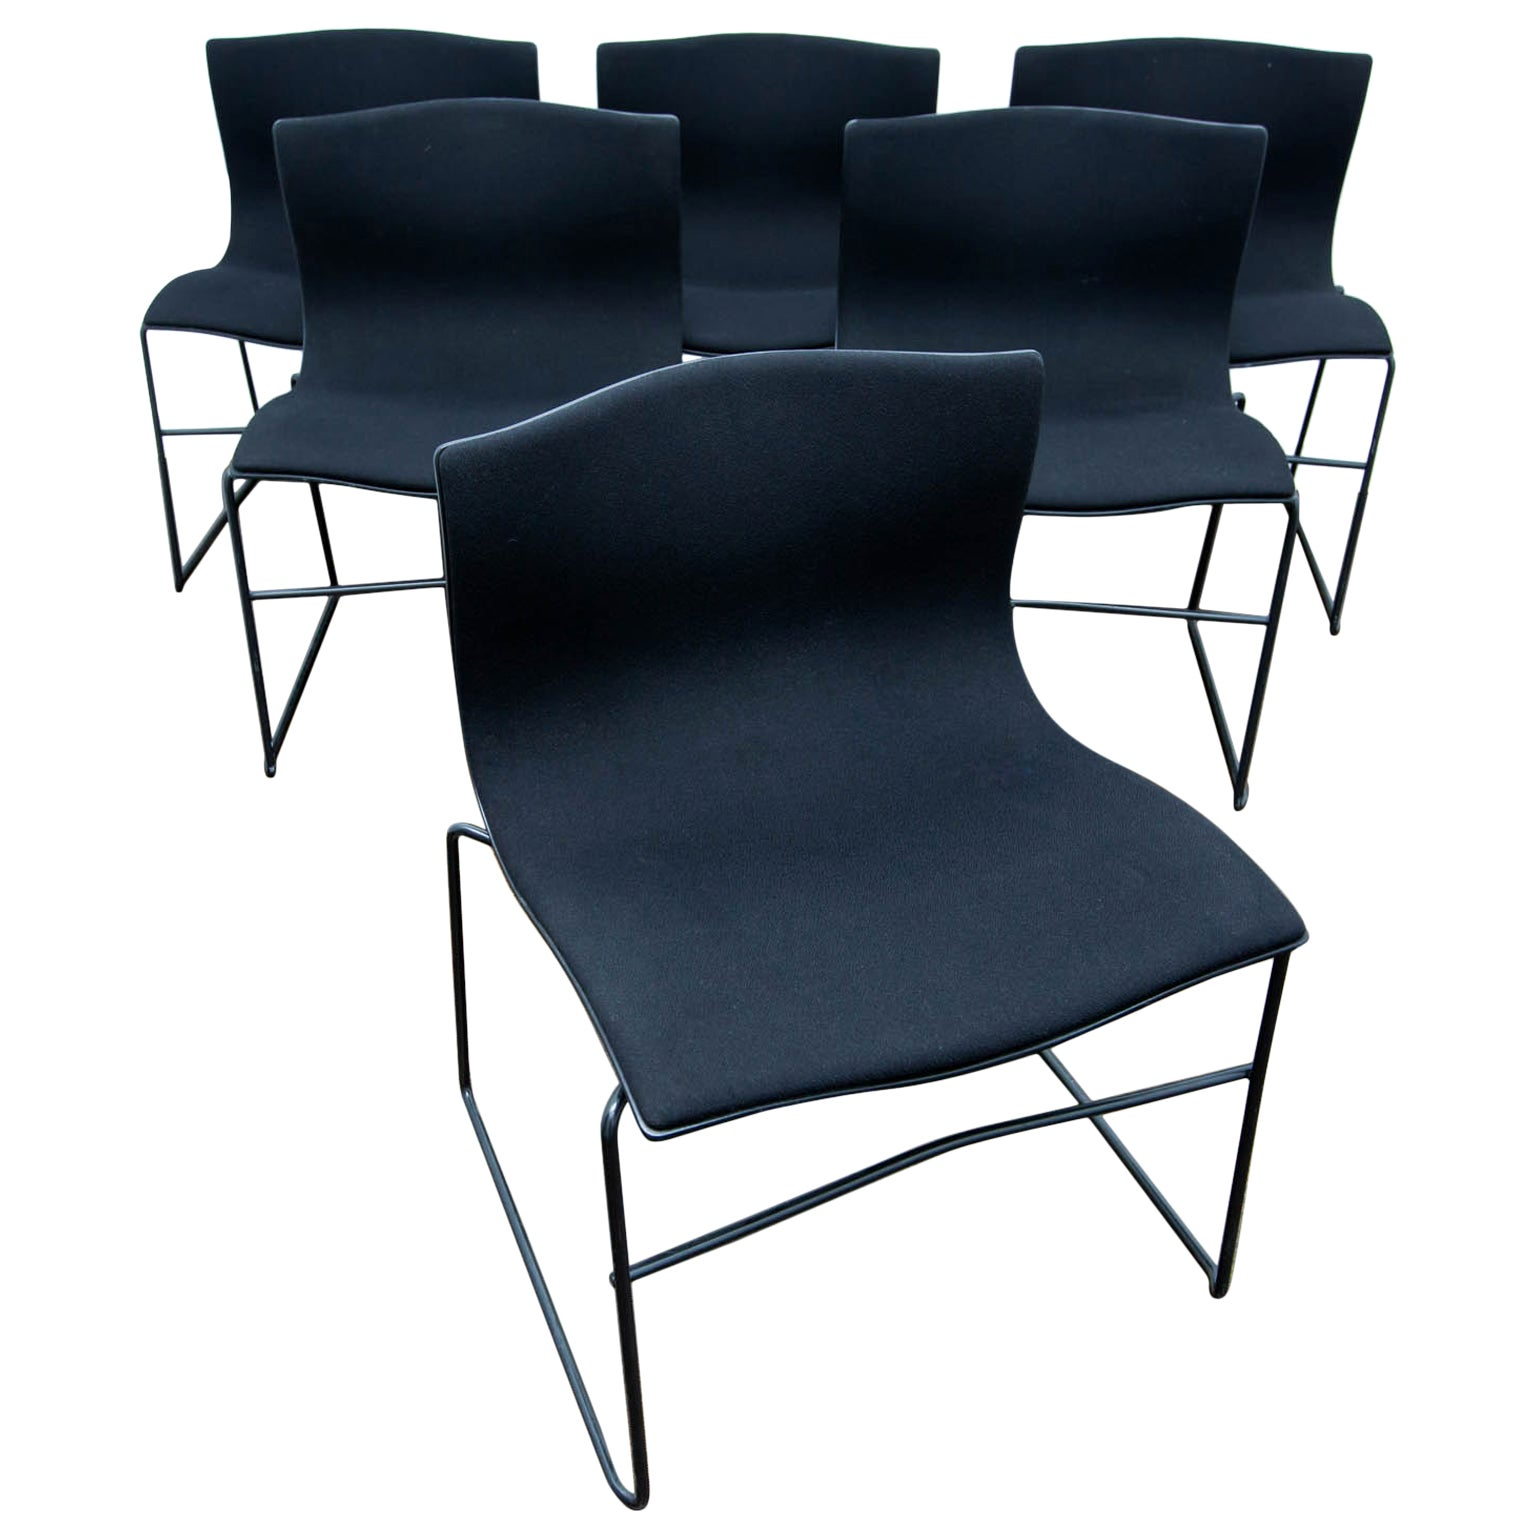 6 Massimo Vignelli Handkerchief Dining Chairs by Knoll